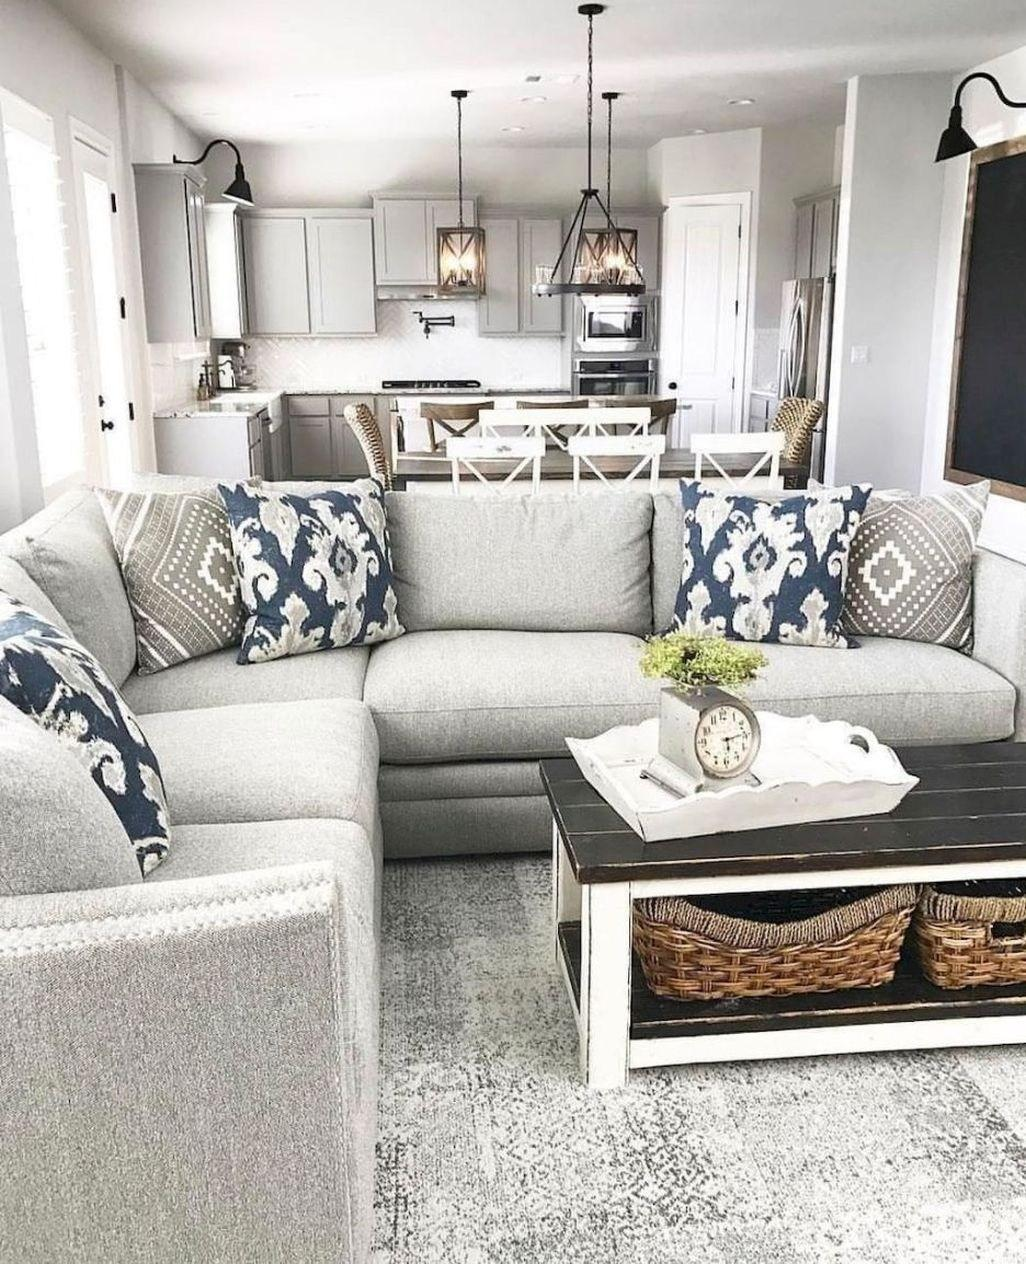 2020 House Trends.Home Decor 2020 Trends For Android Apk Download